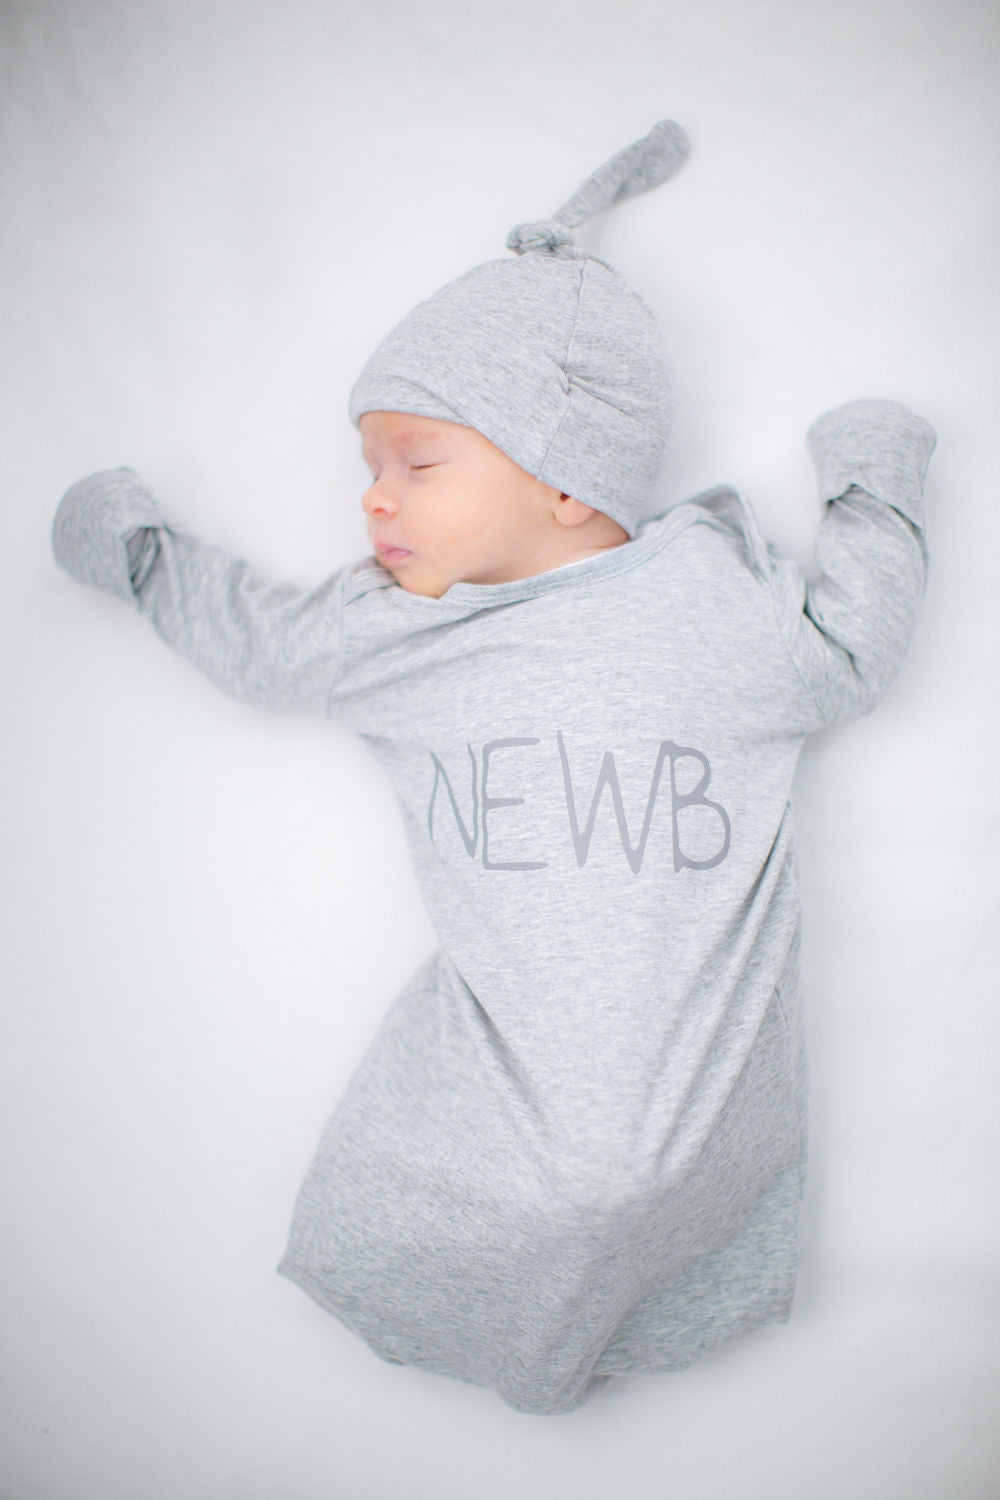 Lilly Robe & Grey Newb Baby Gown Set